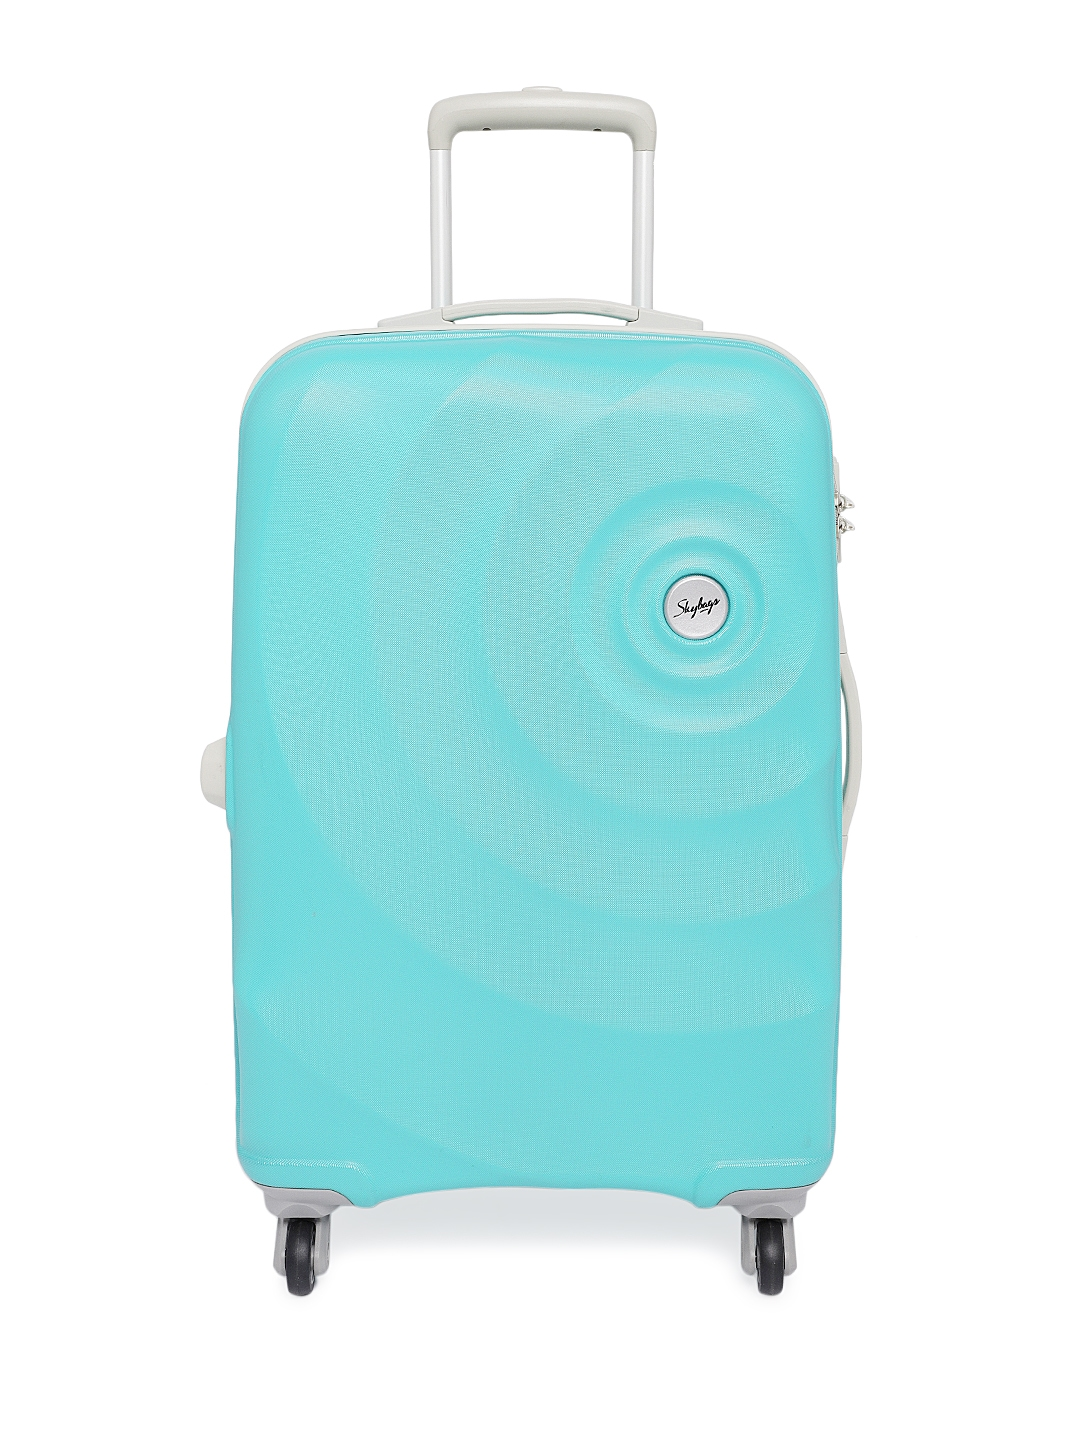 Skybags Unisex Blue MINT STROLLY 67 360 Medium Trolley Suitcase